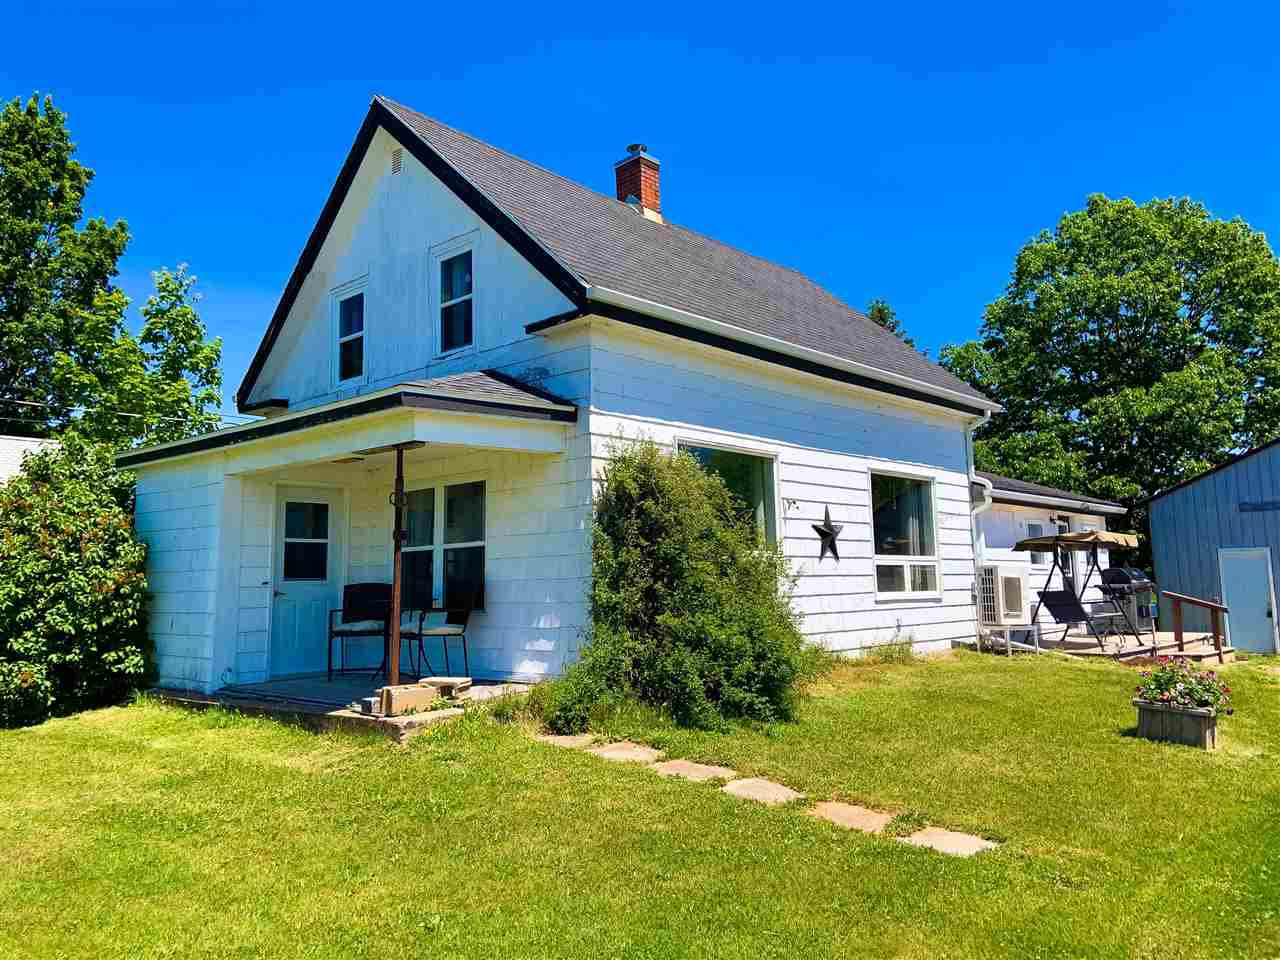 Main Photo: 2400 North Avenue in Canning: 404-Kings County Residential for sale (Annapolis Valley)  : MLS®# 202010722